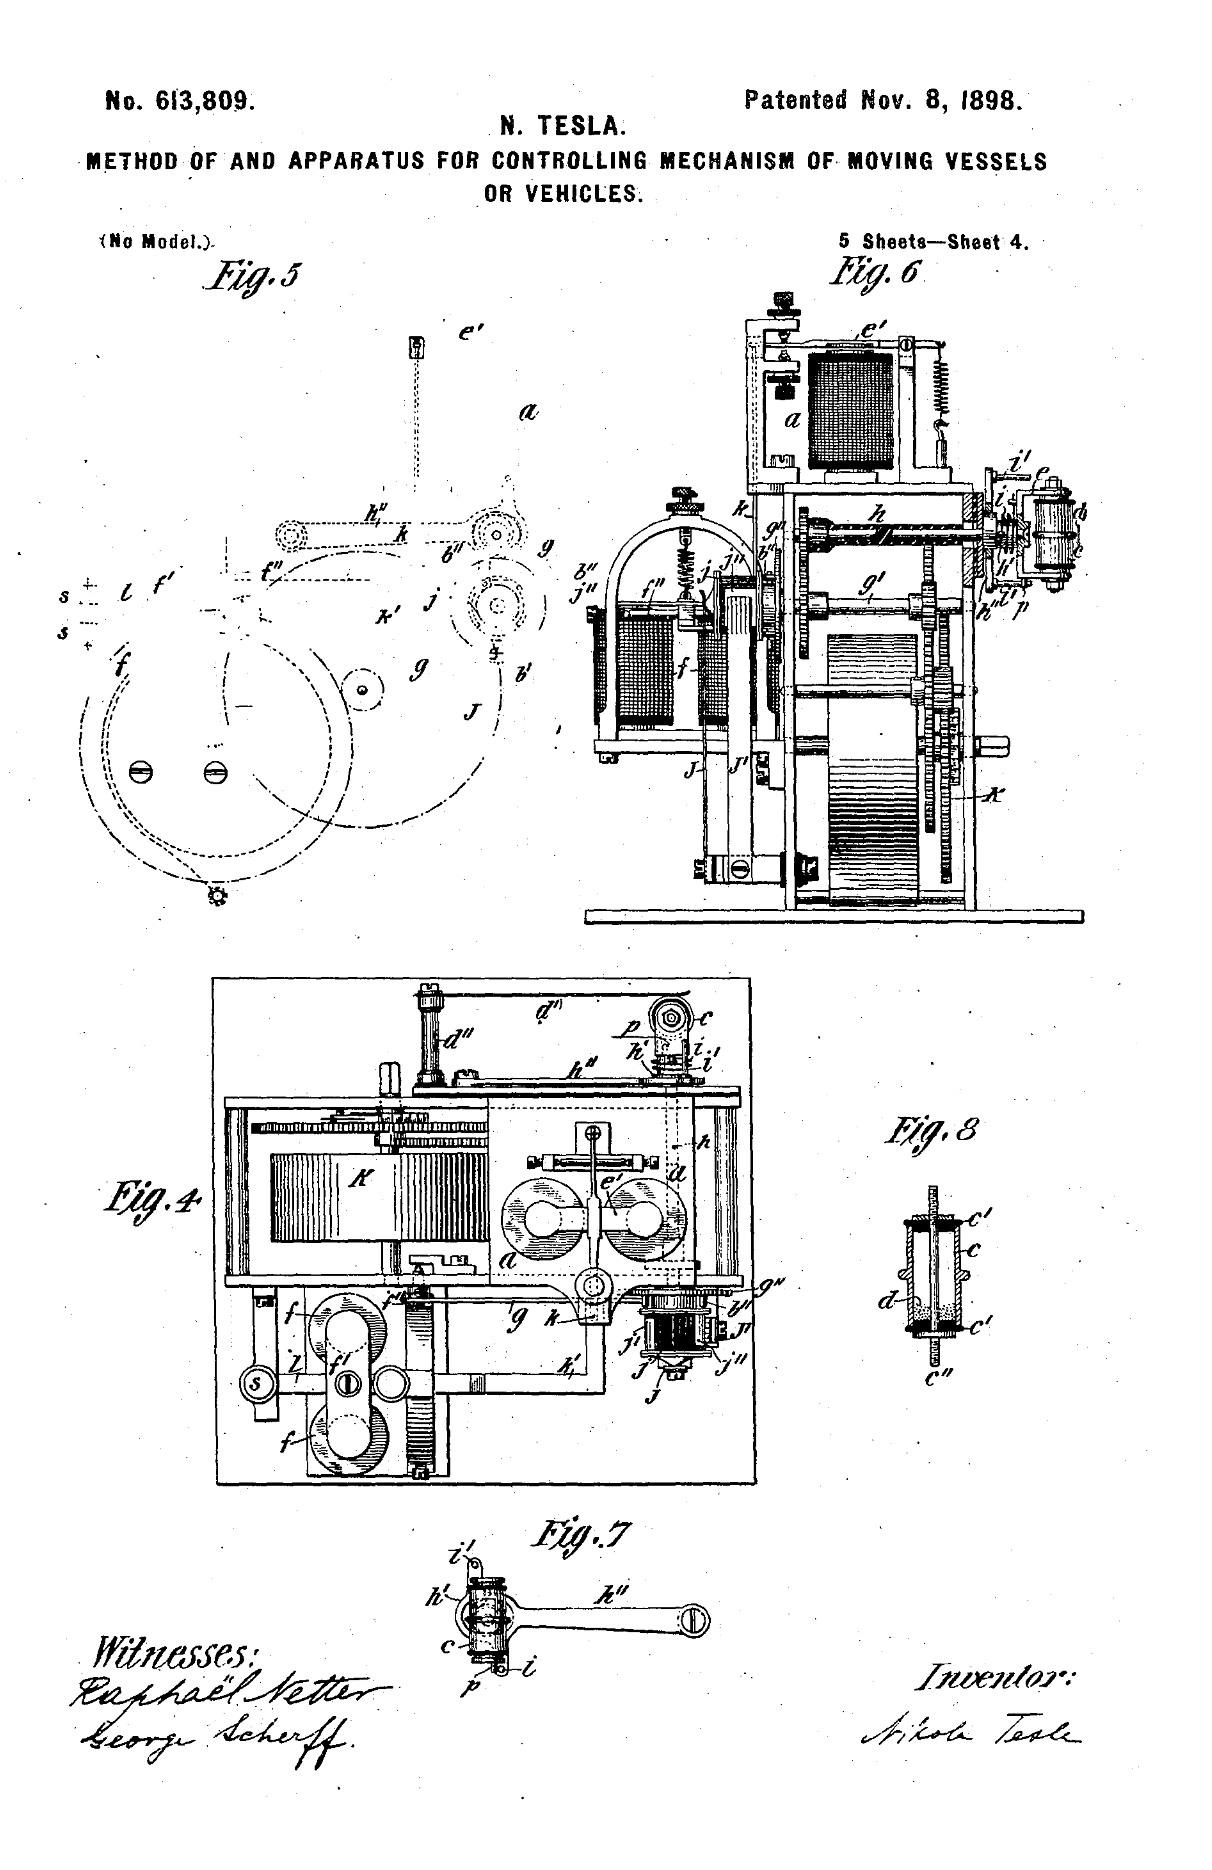 Colorado Springs Laboratory 1899 1900 Open Tesla Research Rex Manufacturing Transformer Wiring Diagram Us613809 Method Of And Apparatus For Controlling Mechanism Moving Vehicle November